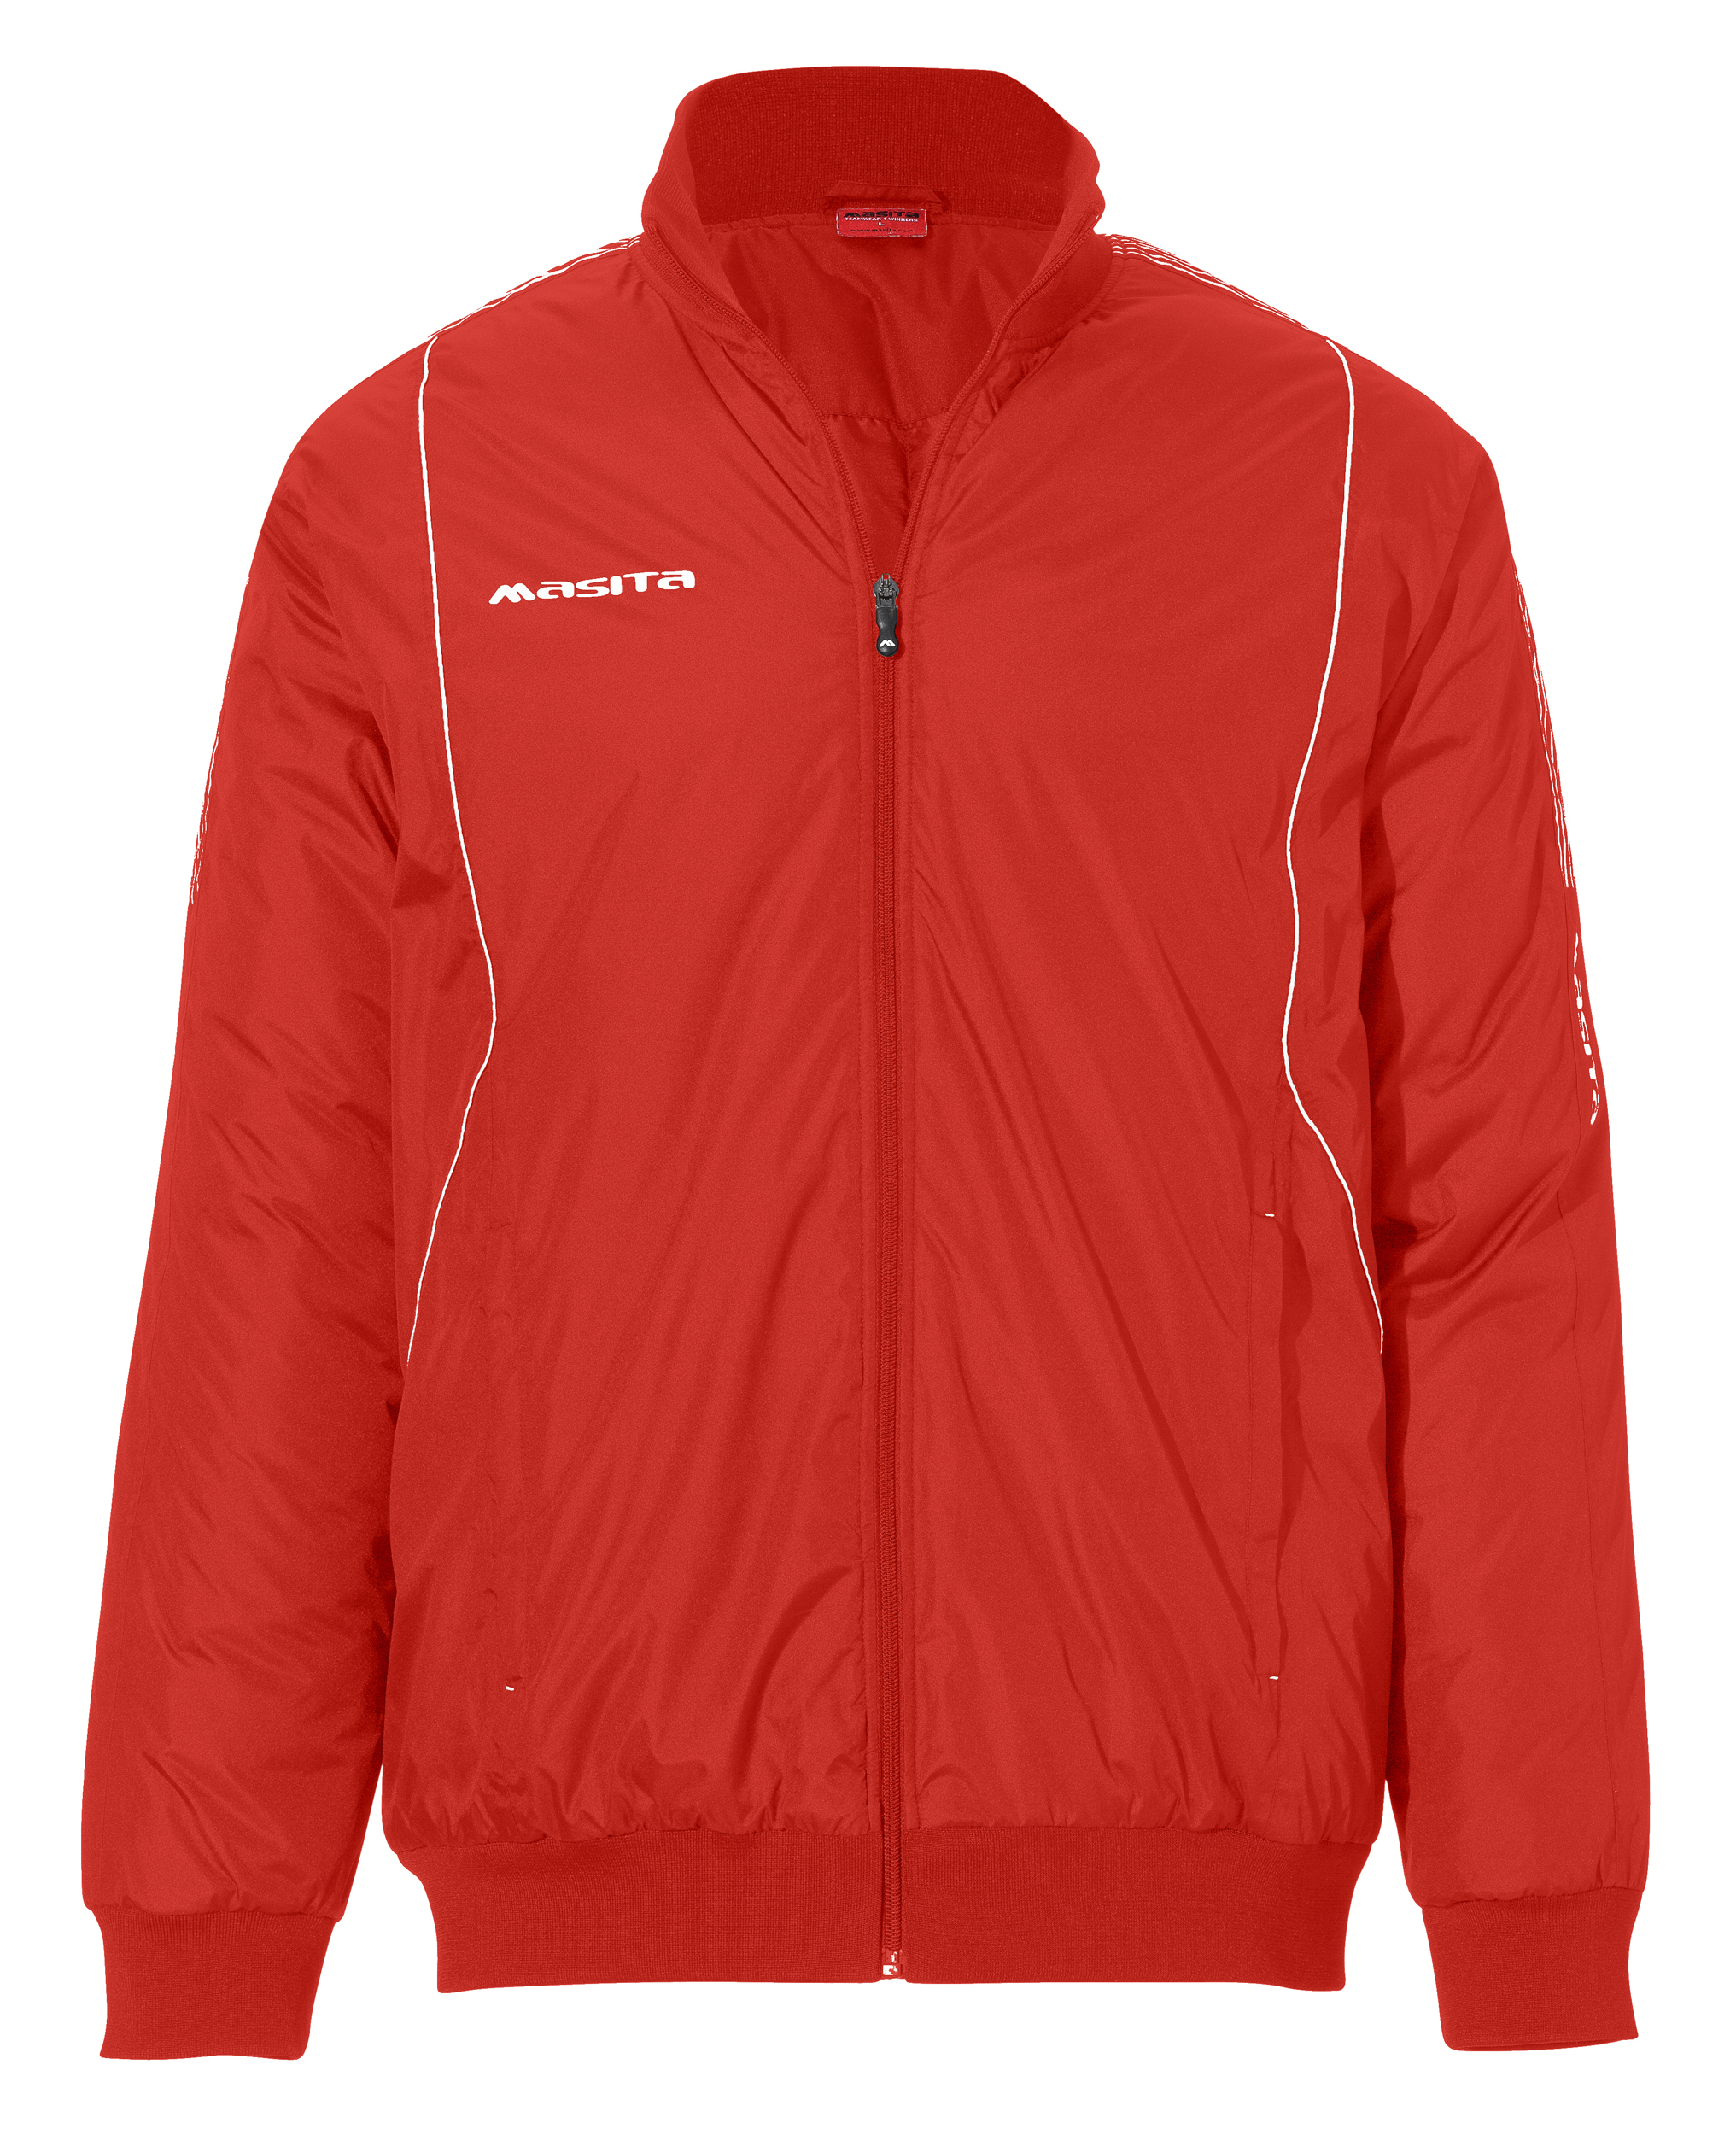 Coach-Jacket Barca  Red / White